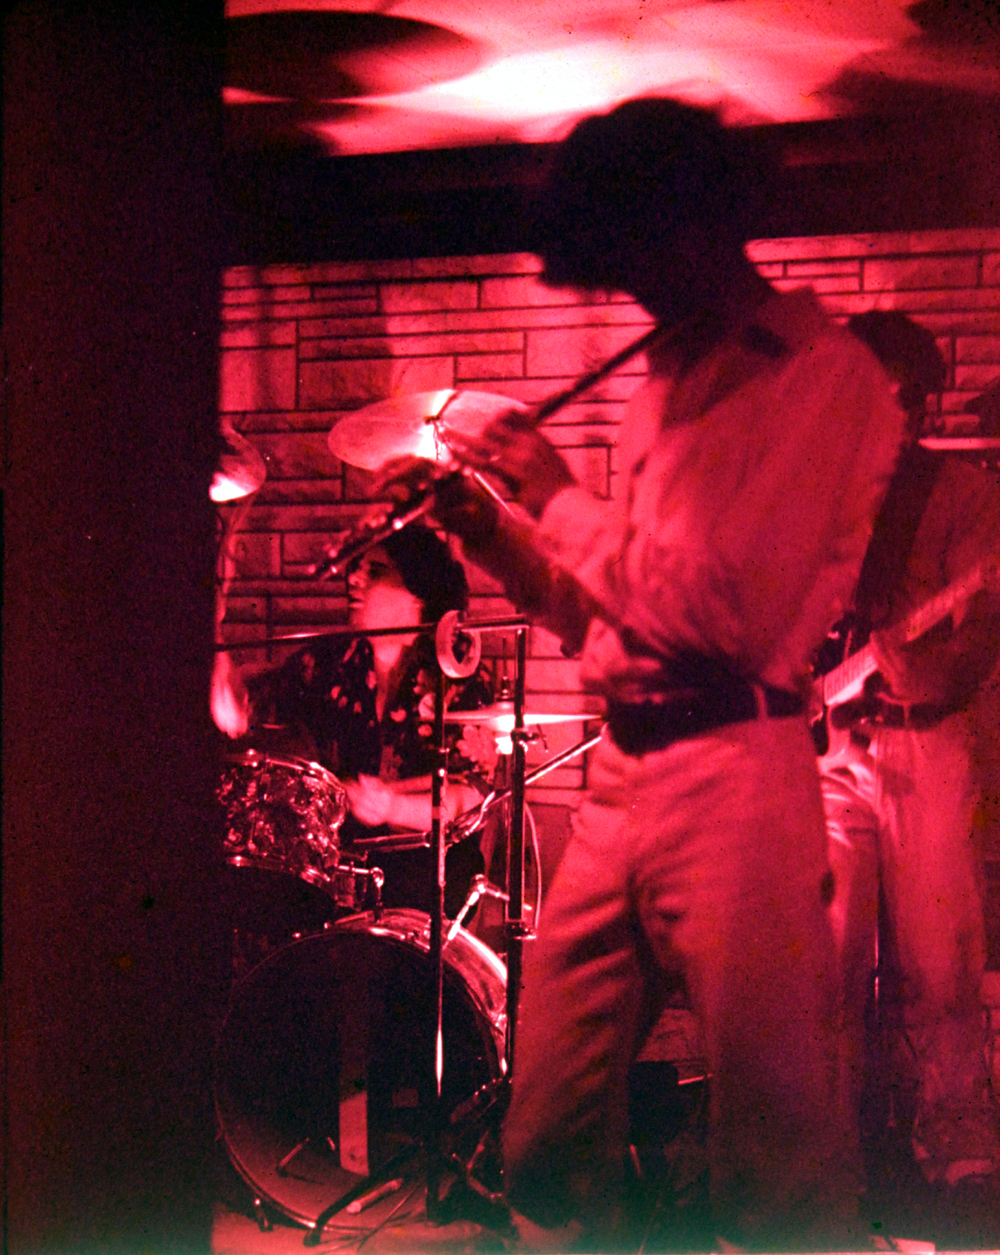 Gerry Cannizzaro, Patt Connolly, Barry Cannizzaro.  Parousia – Plant 6, Niagara Street, 1980